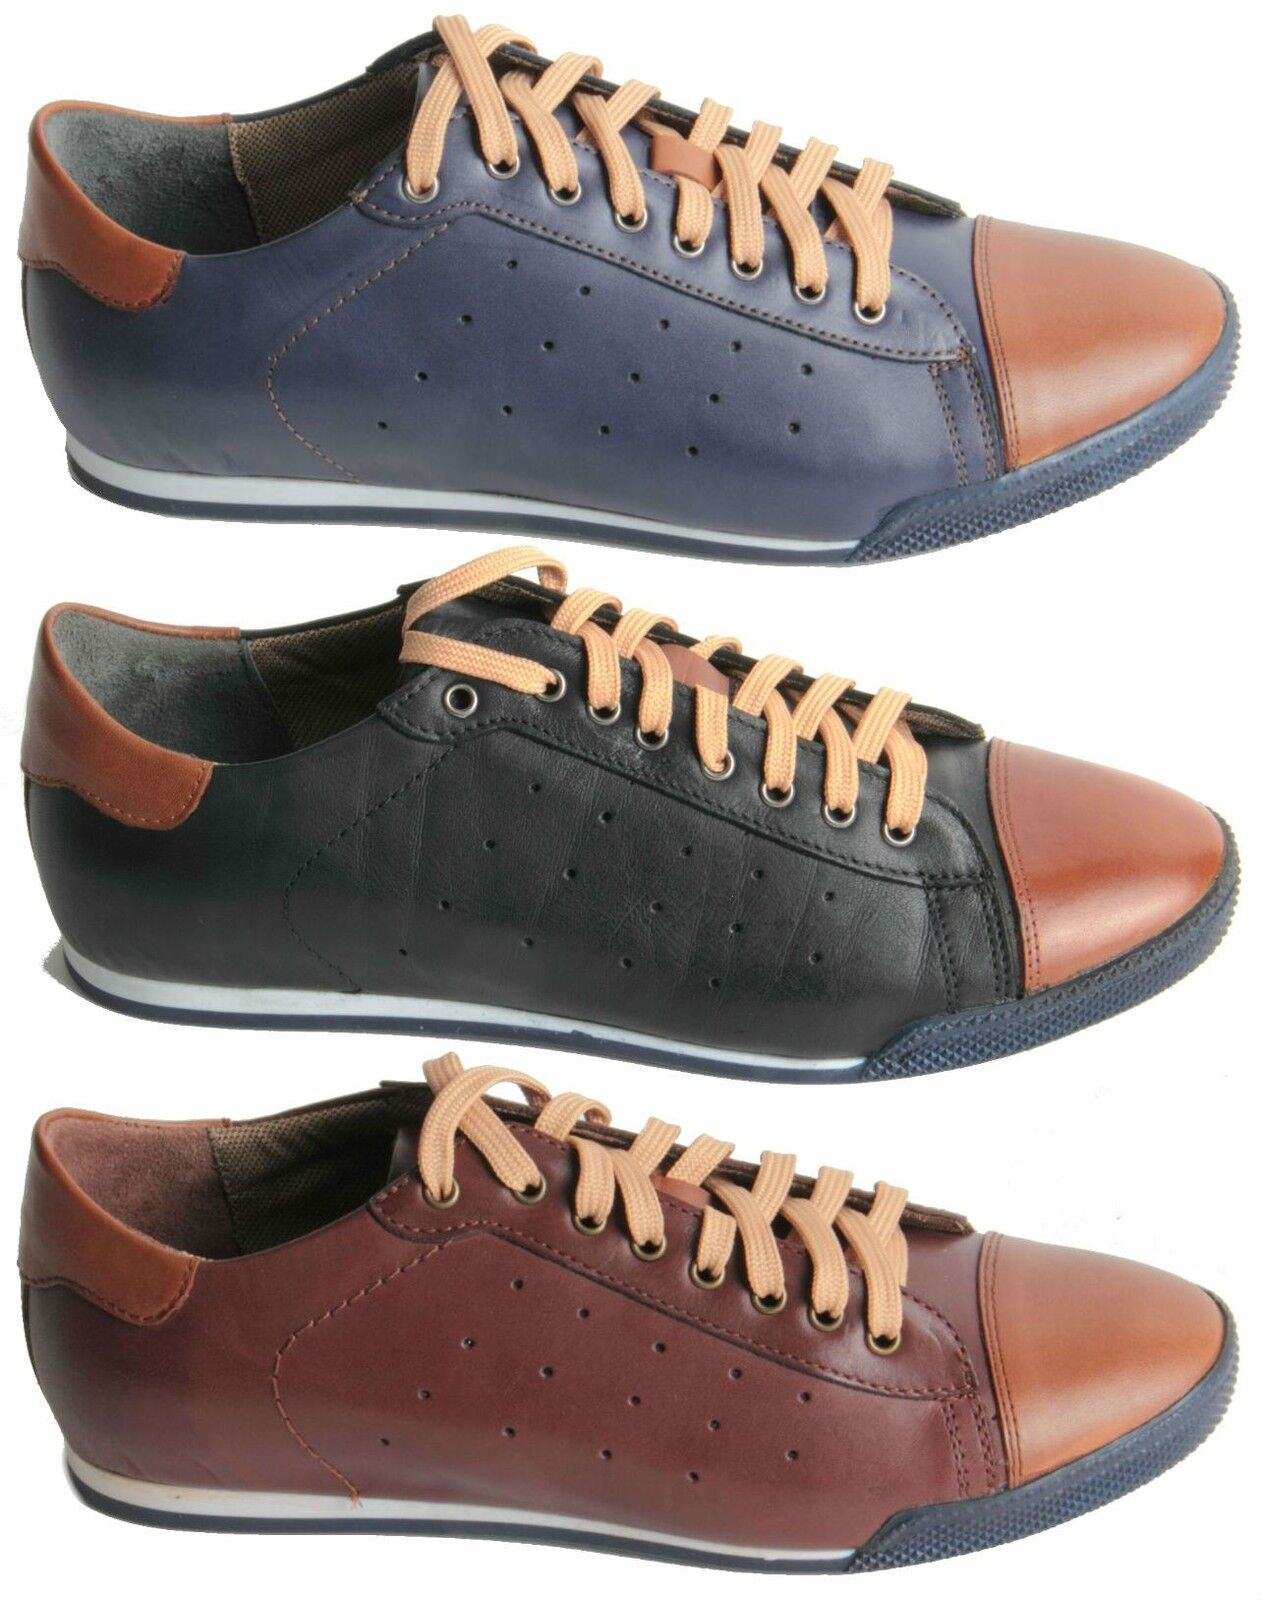 Mens Shoes Genuine Leather Lace Up Capped Toe Trainers Decorative Sole Shoes